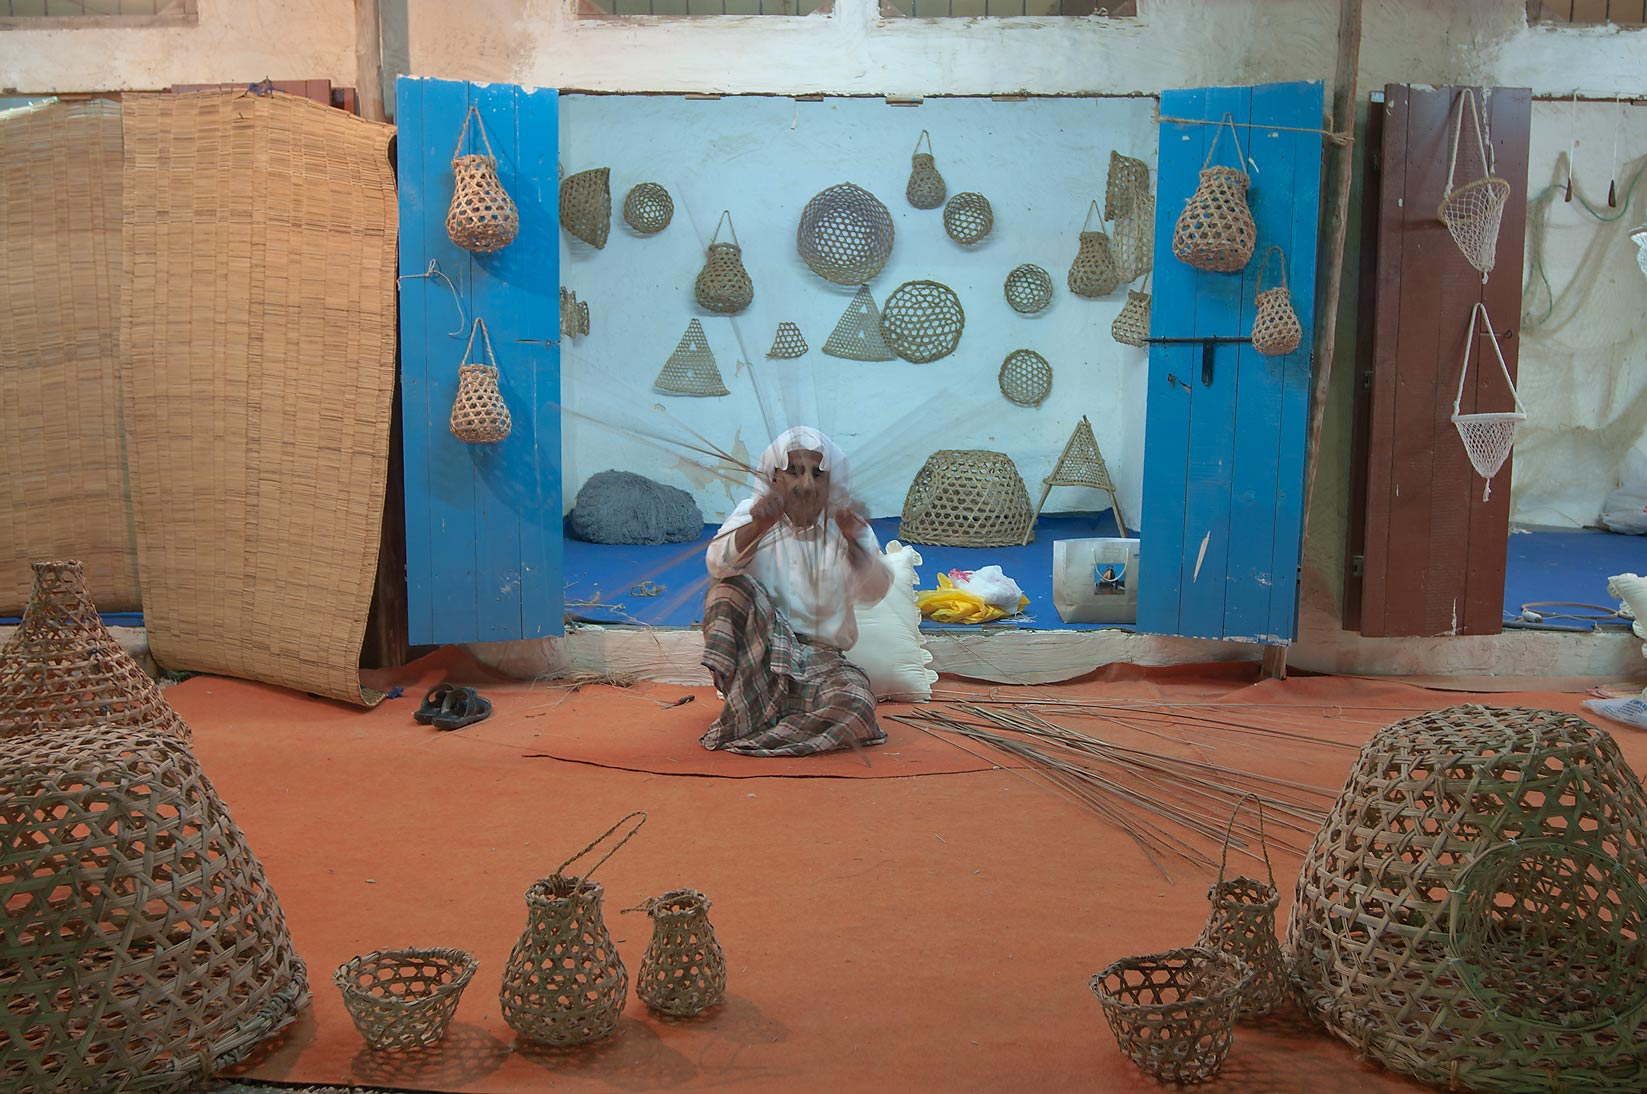 Basket weaving craft show in Rumeilah Park. Doha, Qatar